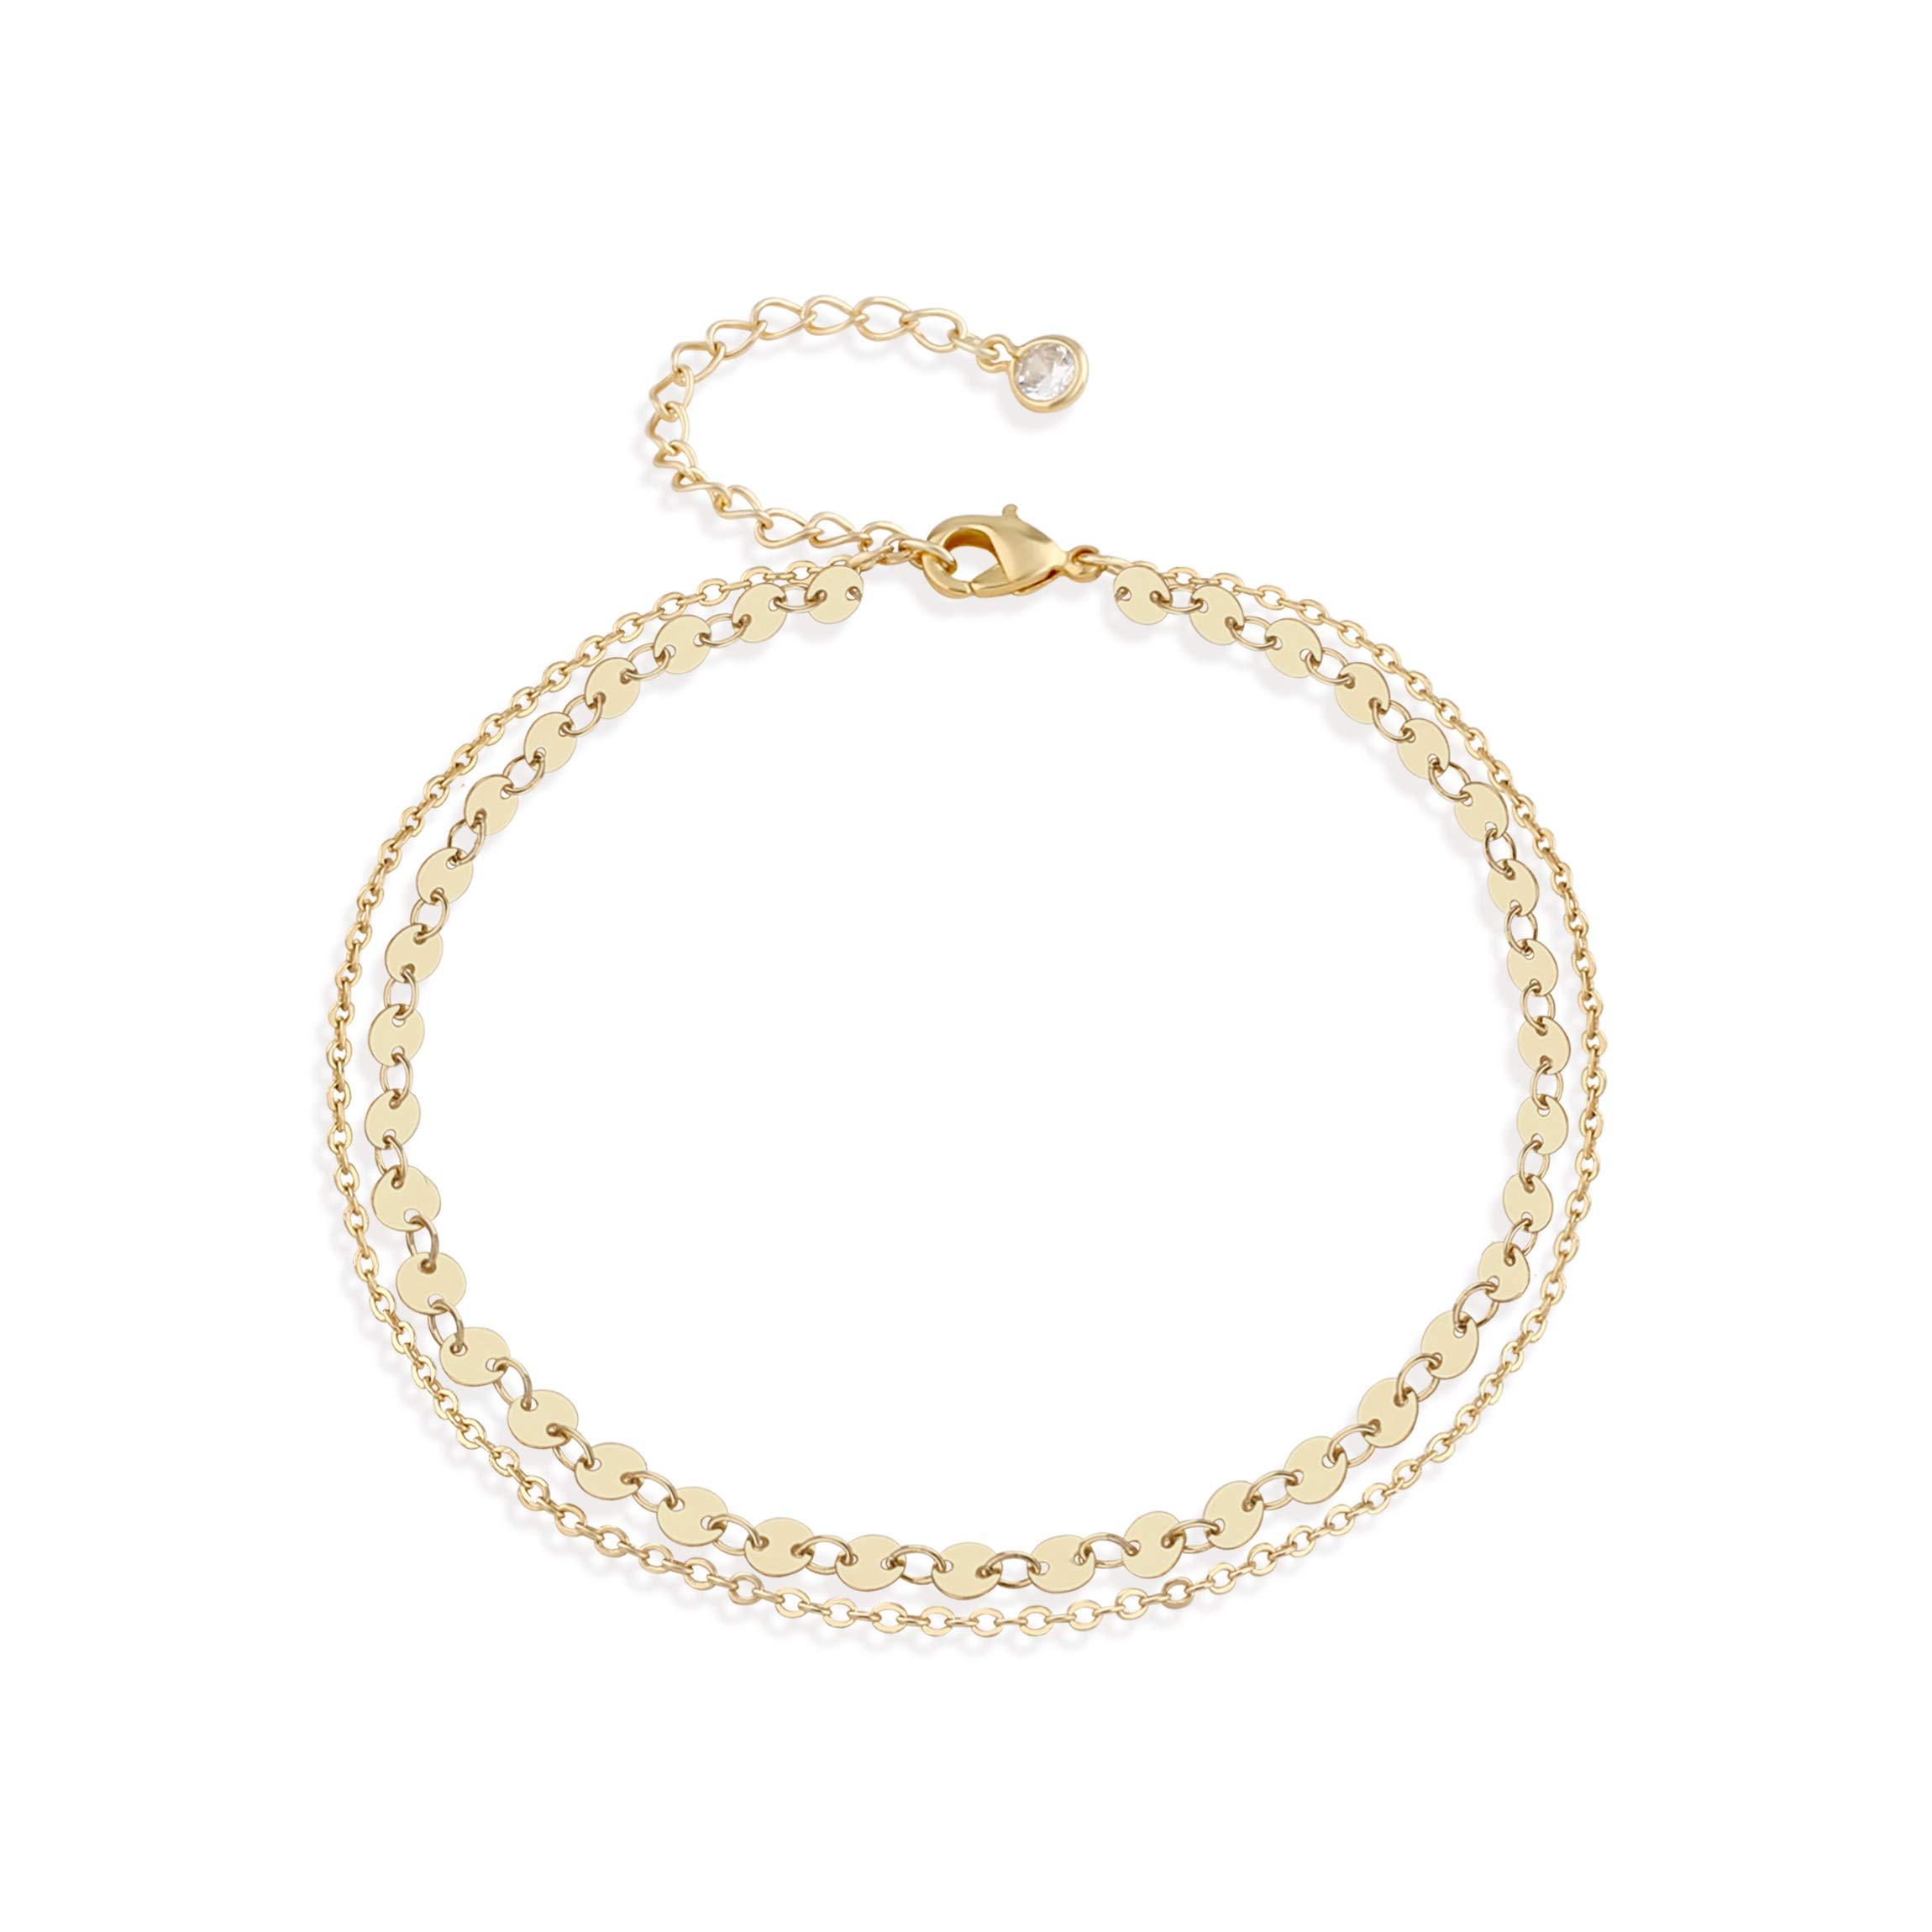 Dainty Gold Coin Chain Anklet,Double Layer 14K Gold Plated Disc Chain Ankle Bracelets for Women by Dremmy